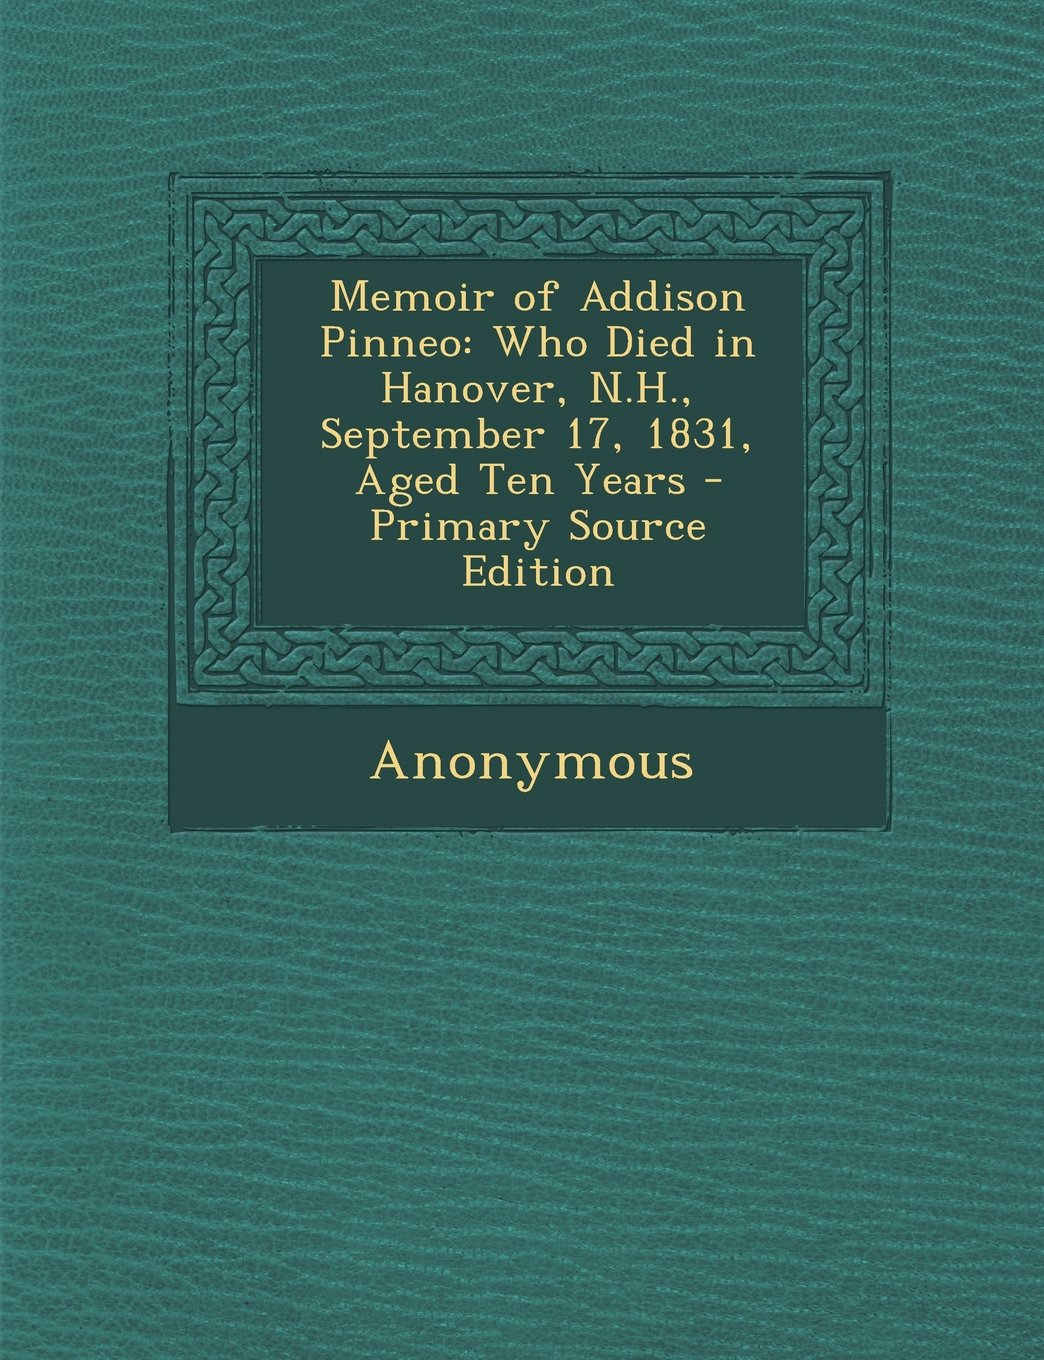 Download Memoir of Addison Pinneo: Who Died in Hanover, N.H., September 17, 1831, Aged Ten Years - Primary Source Edition PDF